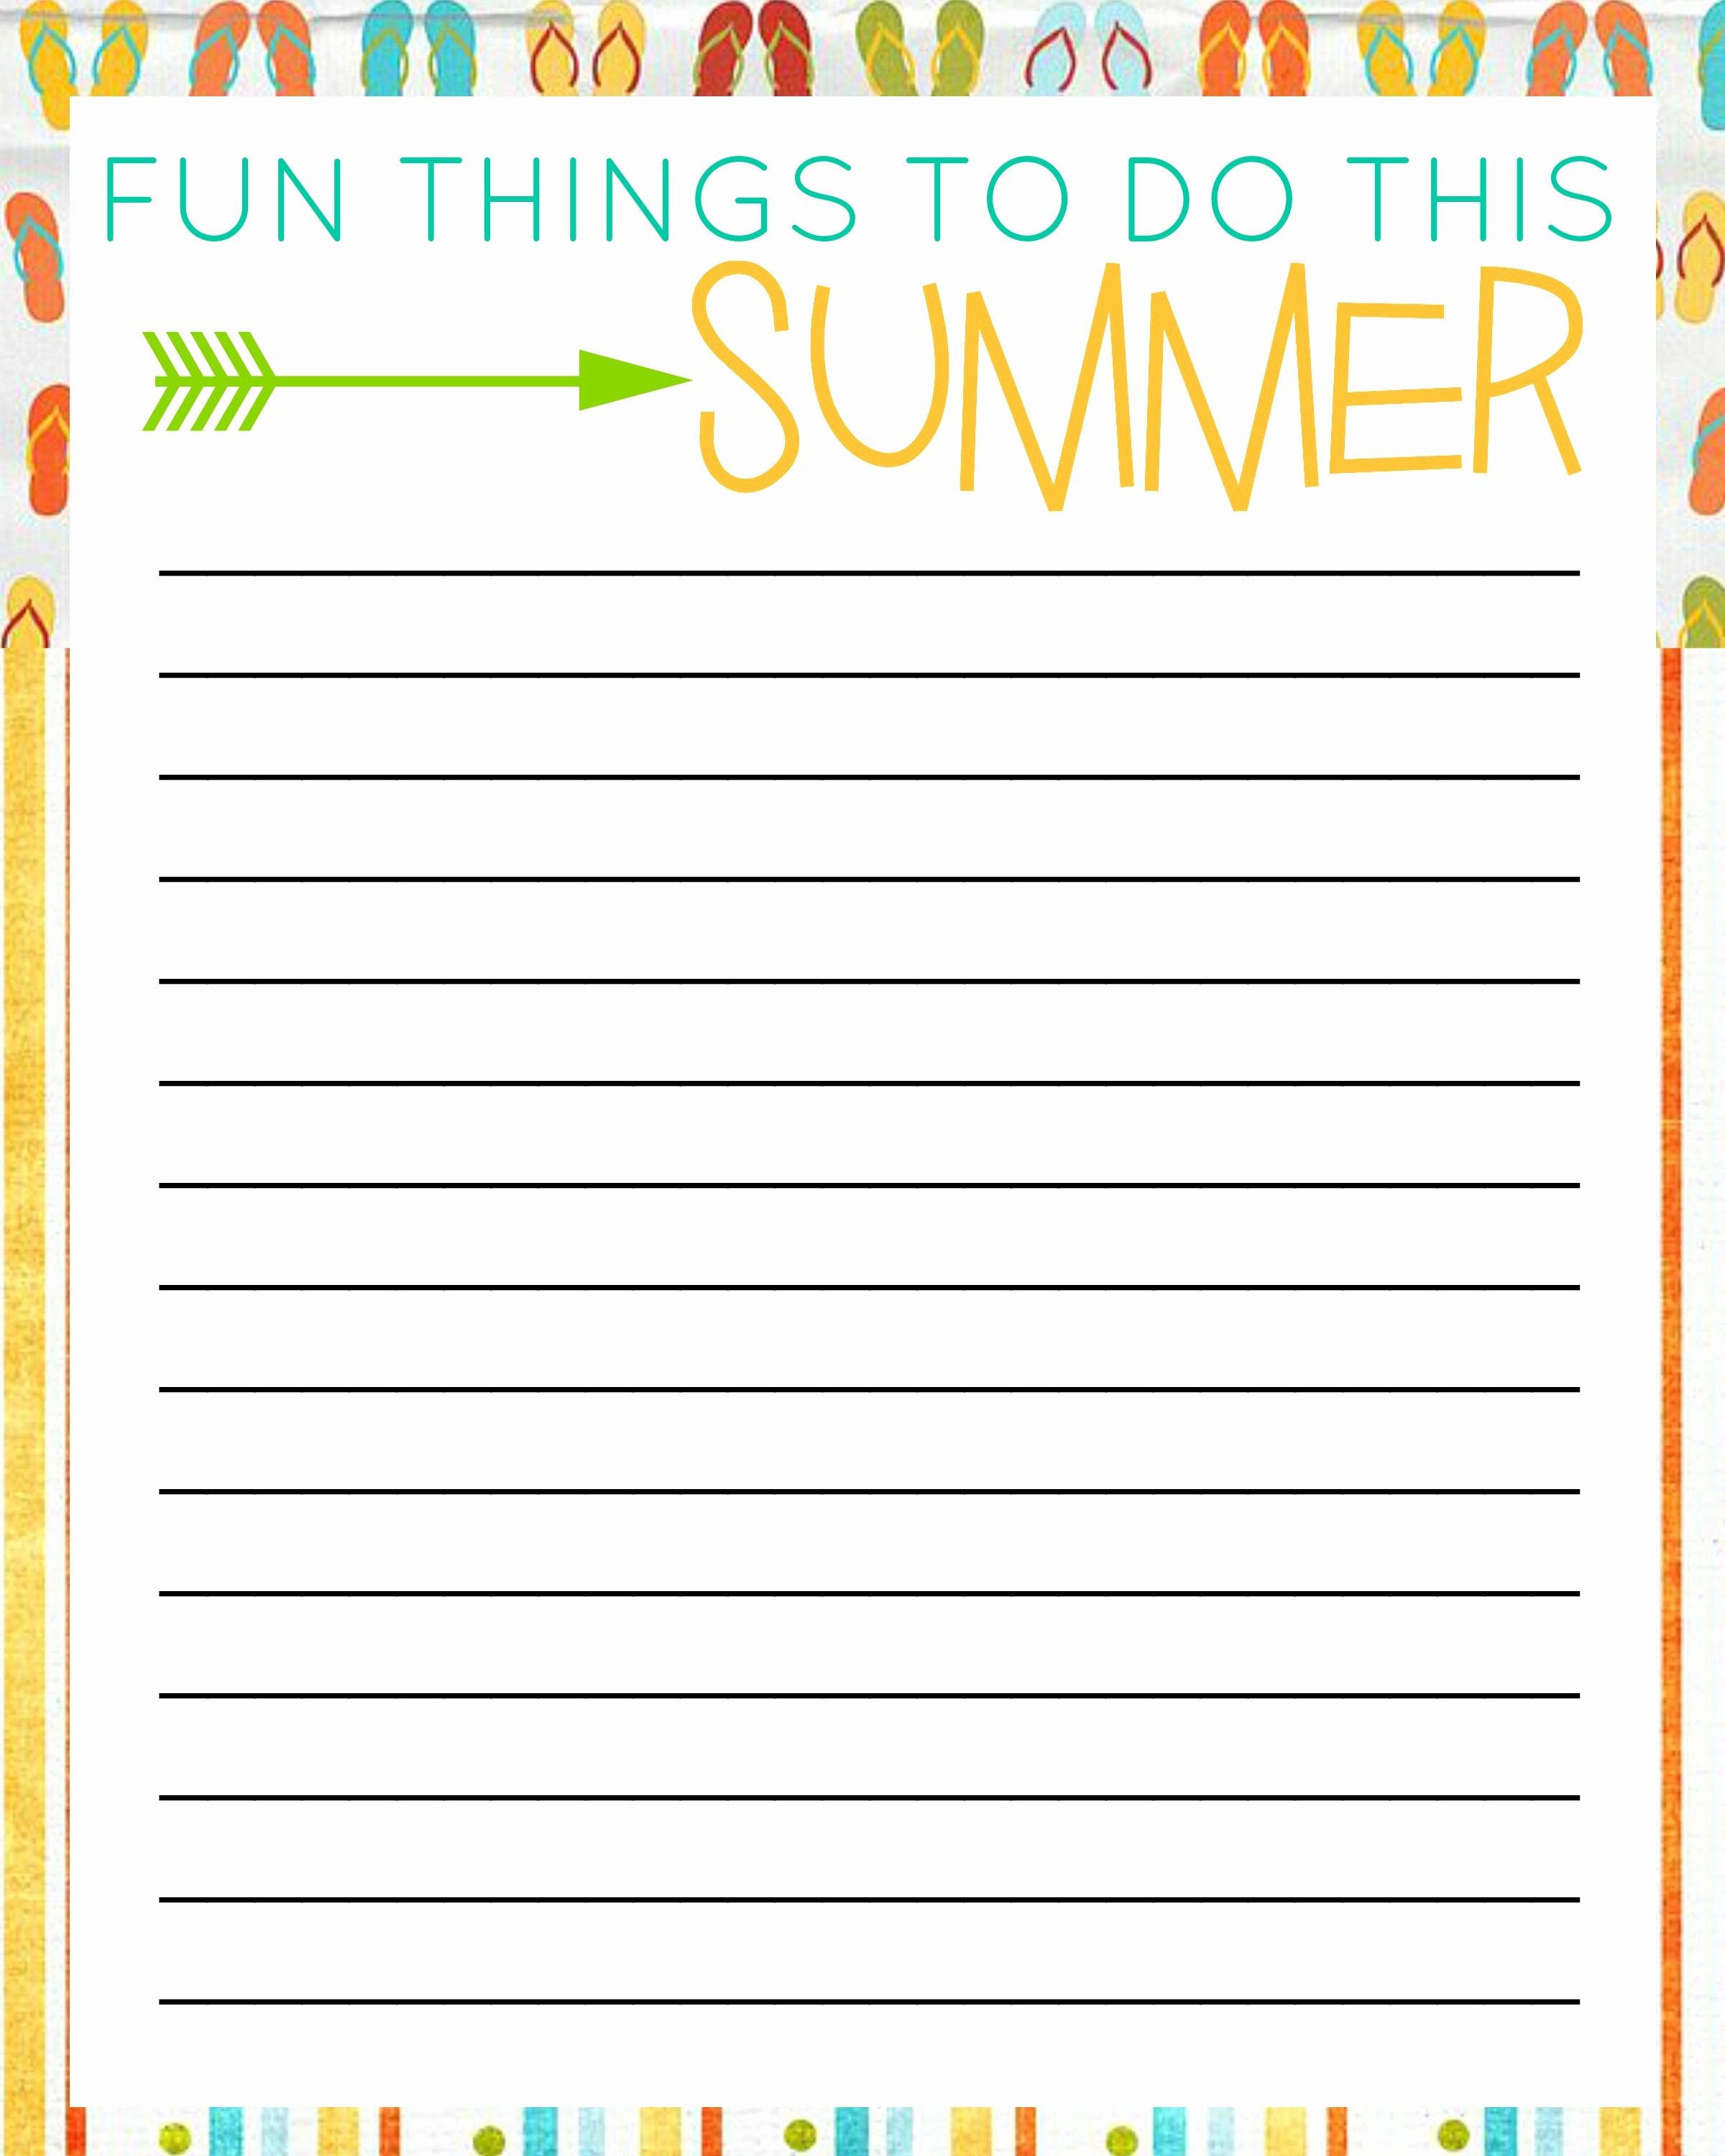 Things to Do today List Beautiful 7 Best Of Things to Do List Free Printable Free